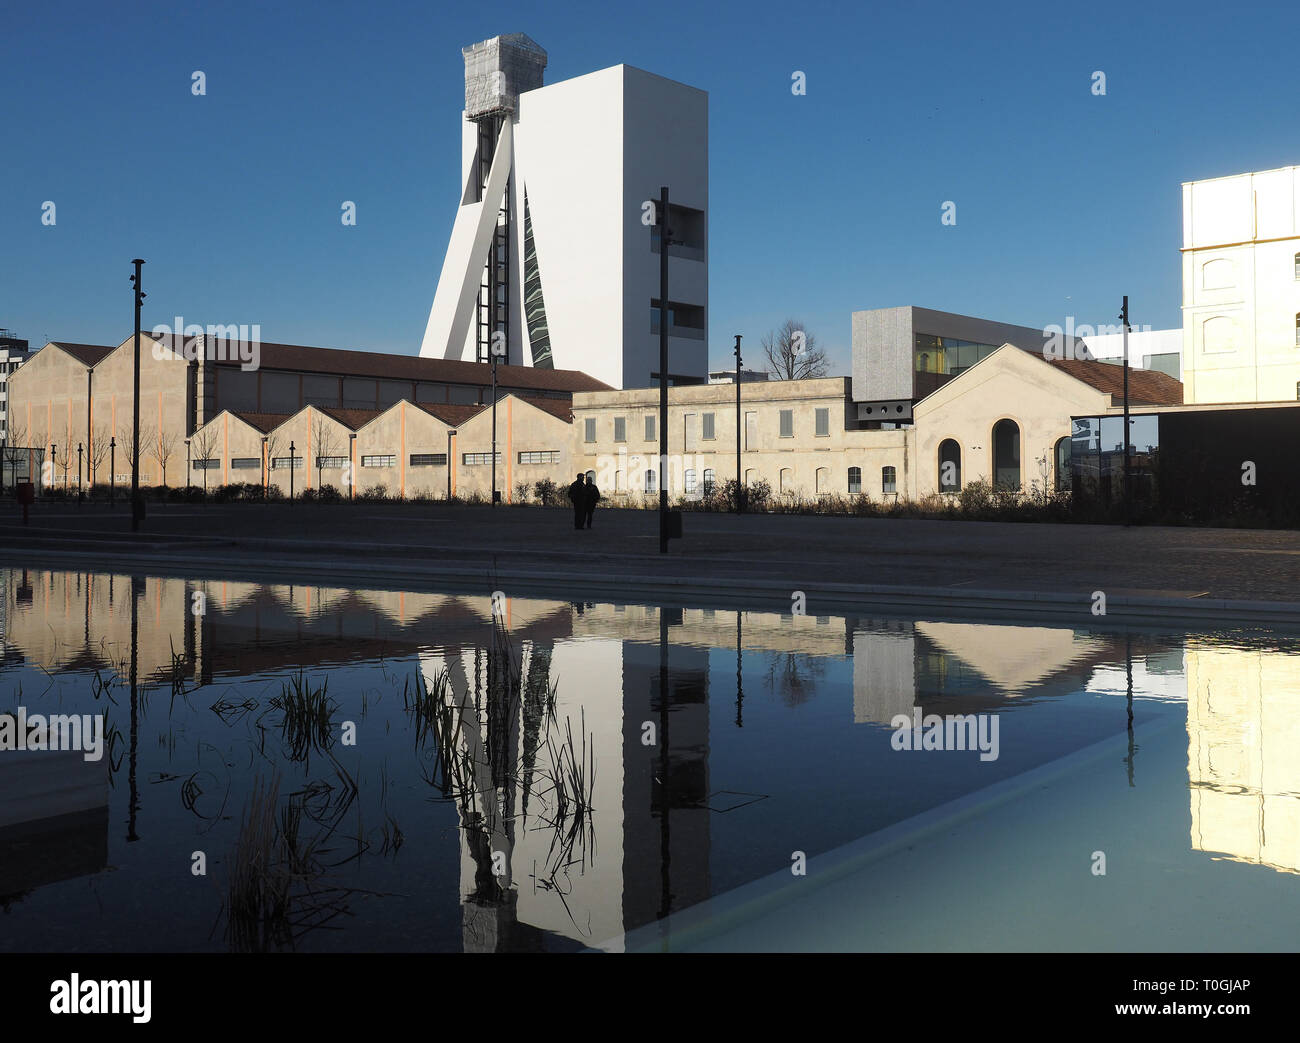 ITALY, LOMBARDY, MILAN, FONDAZIONE PRADA MUSEUM DESIGNED BY REM KOOLHAAS - Stock Image